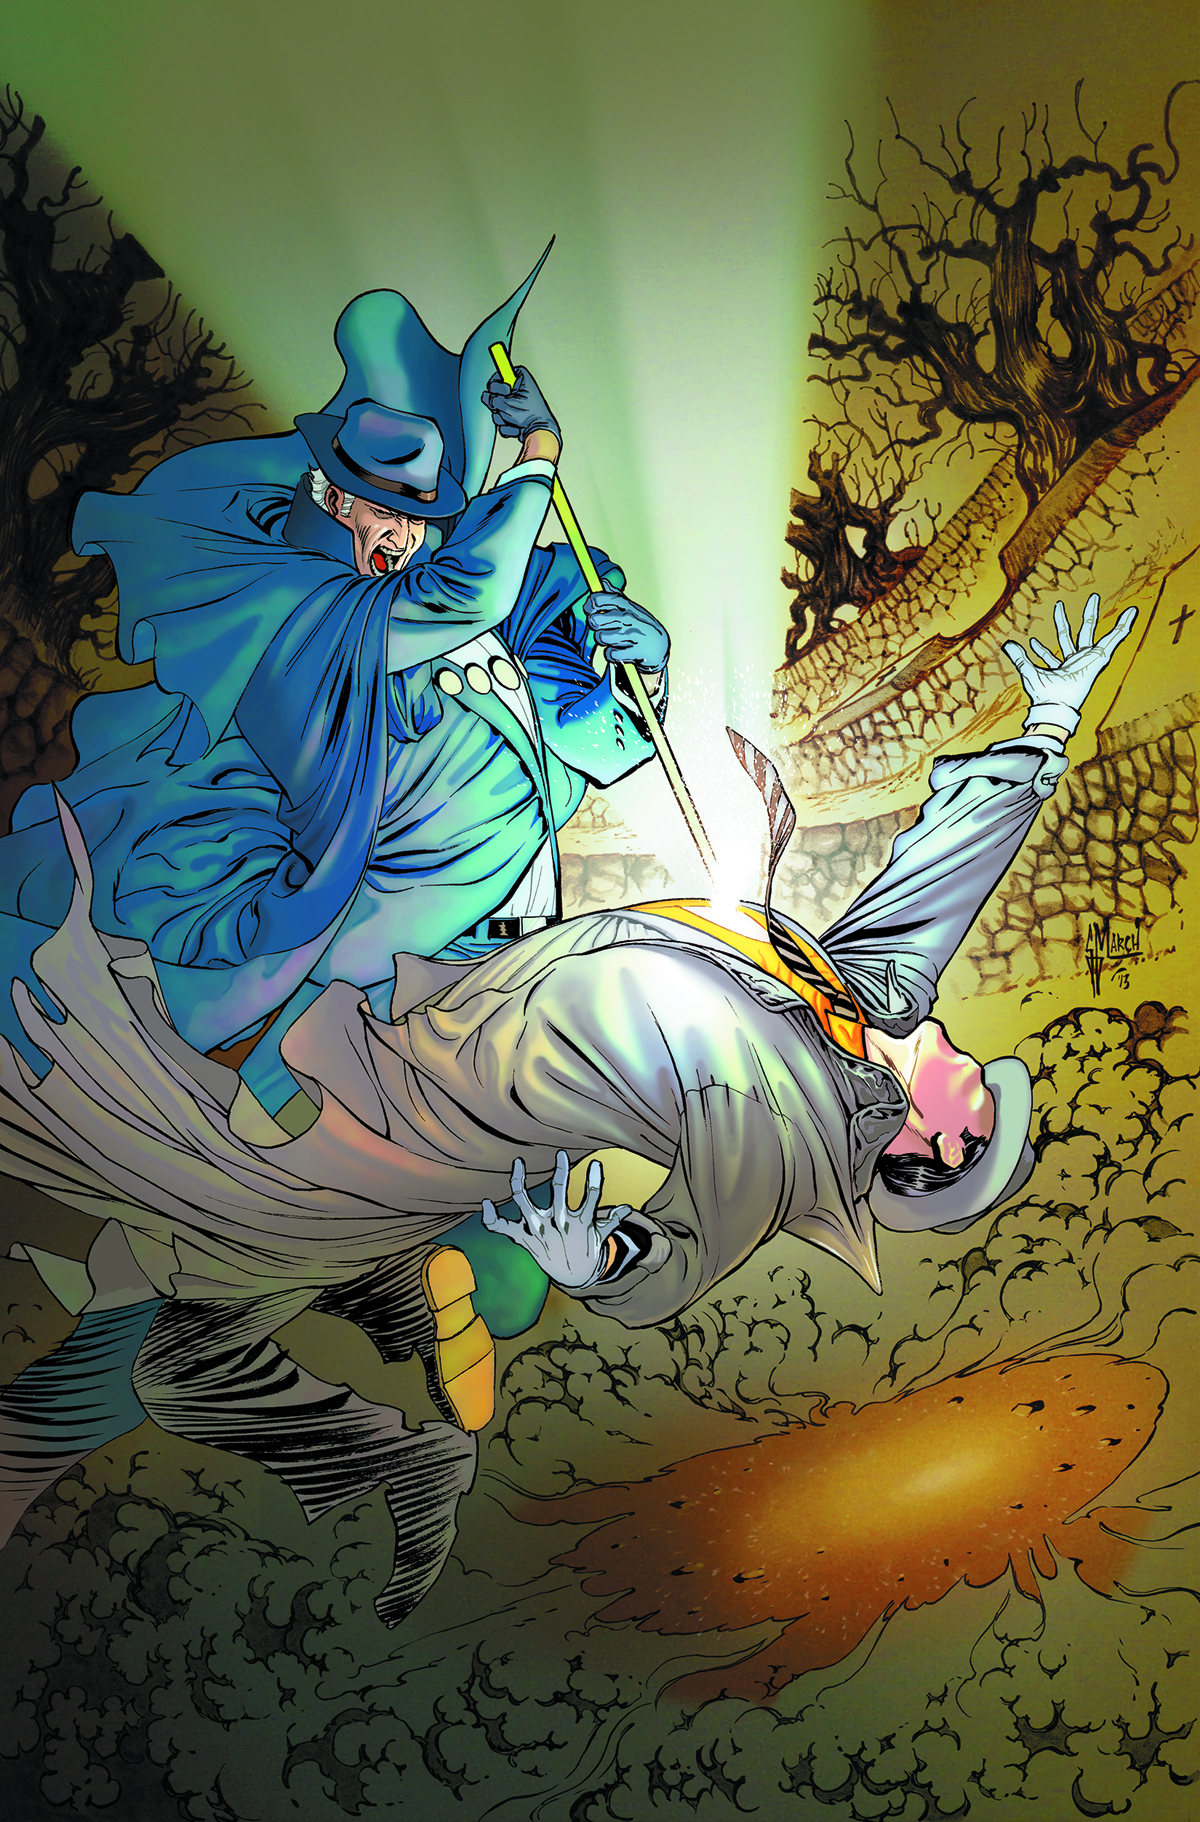 TRINITY OF SIN THE PHANTOM STRANGER #13